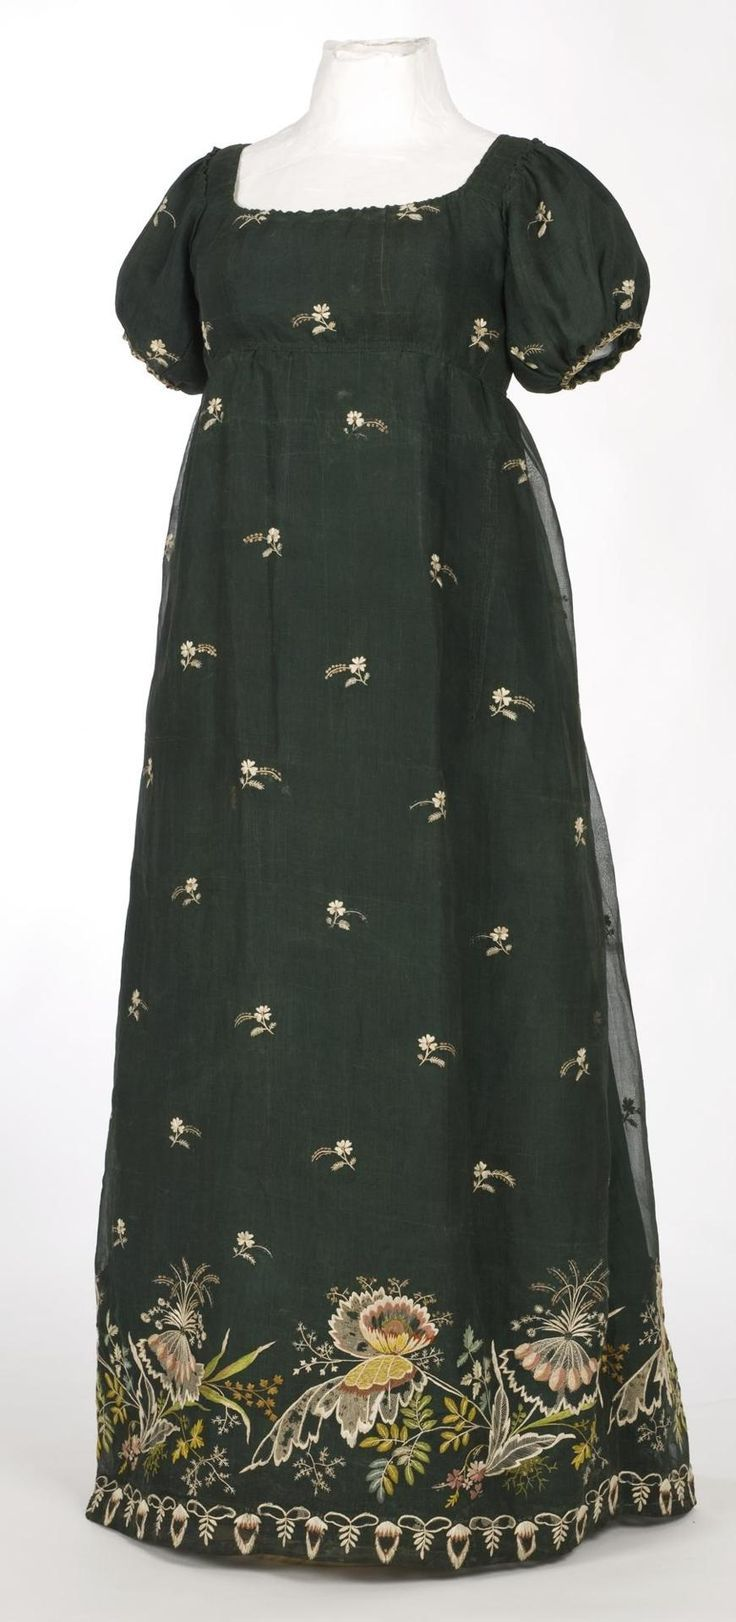 Ca very early s dress with polychrome embroidery imatex